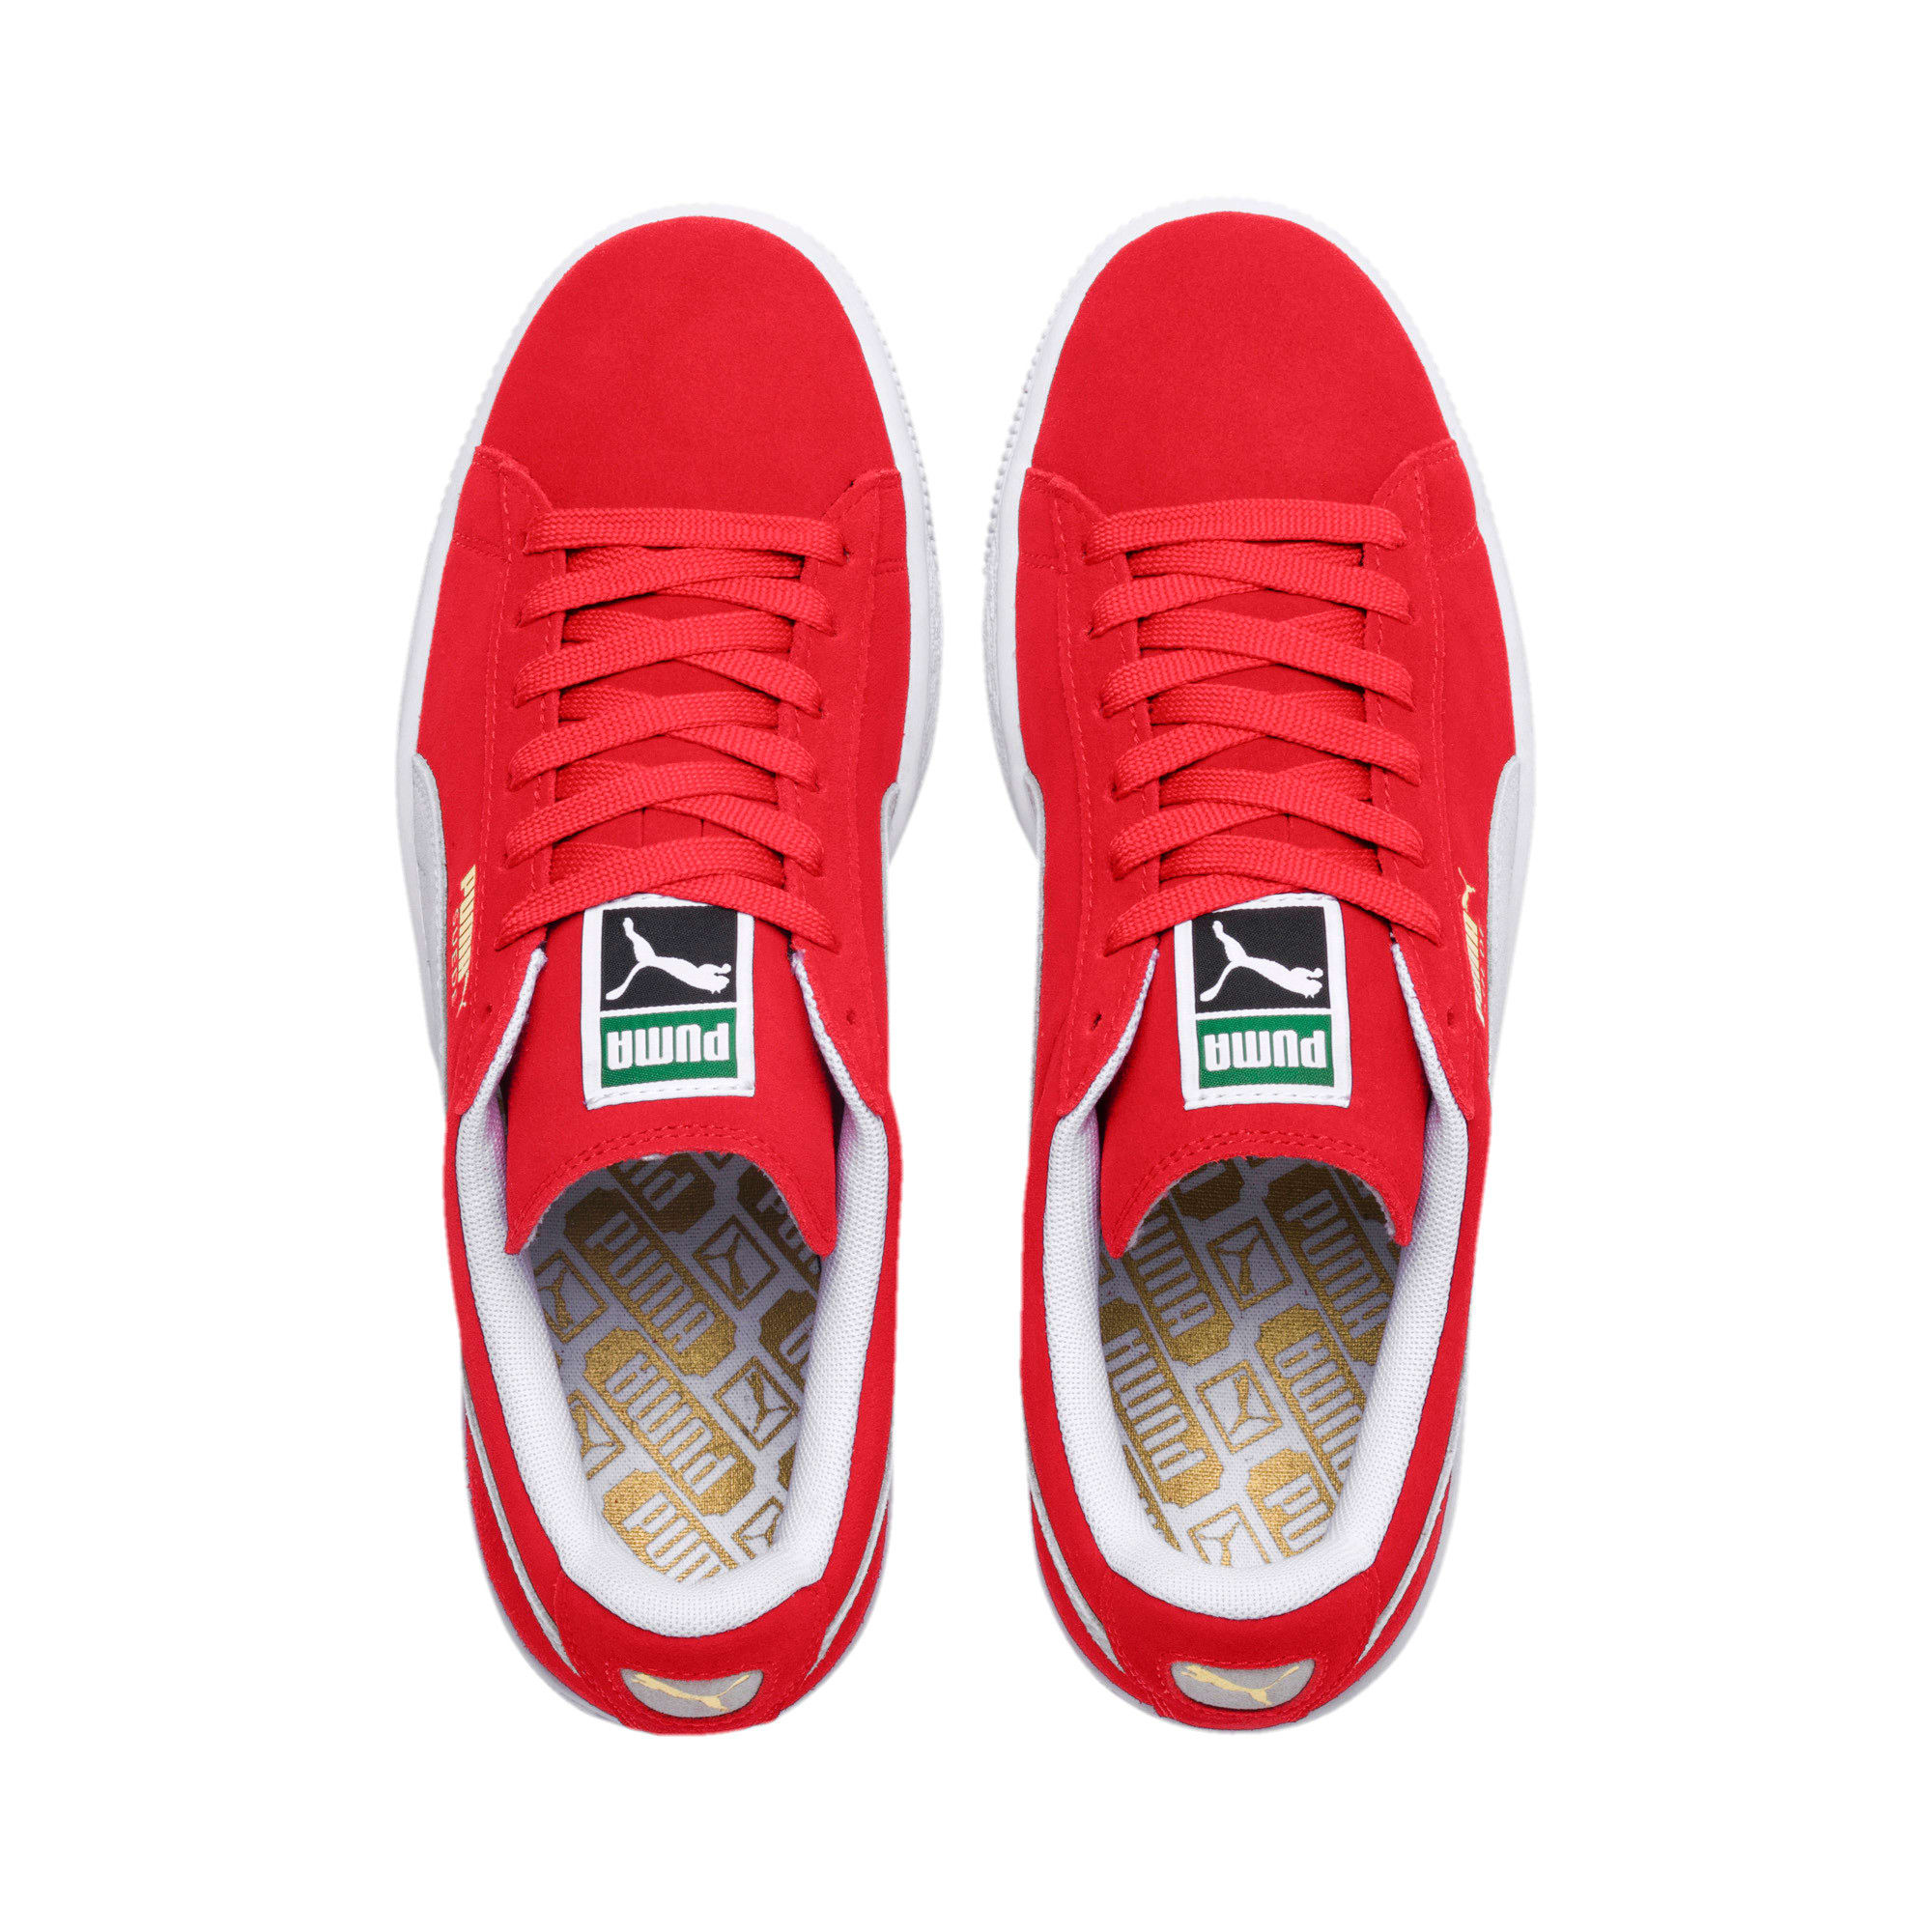 Thumbnail 6 of Suede Classic+ Sneakers, team regal red-white, medium